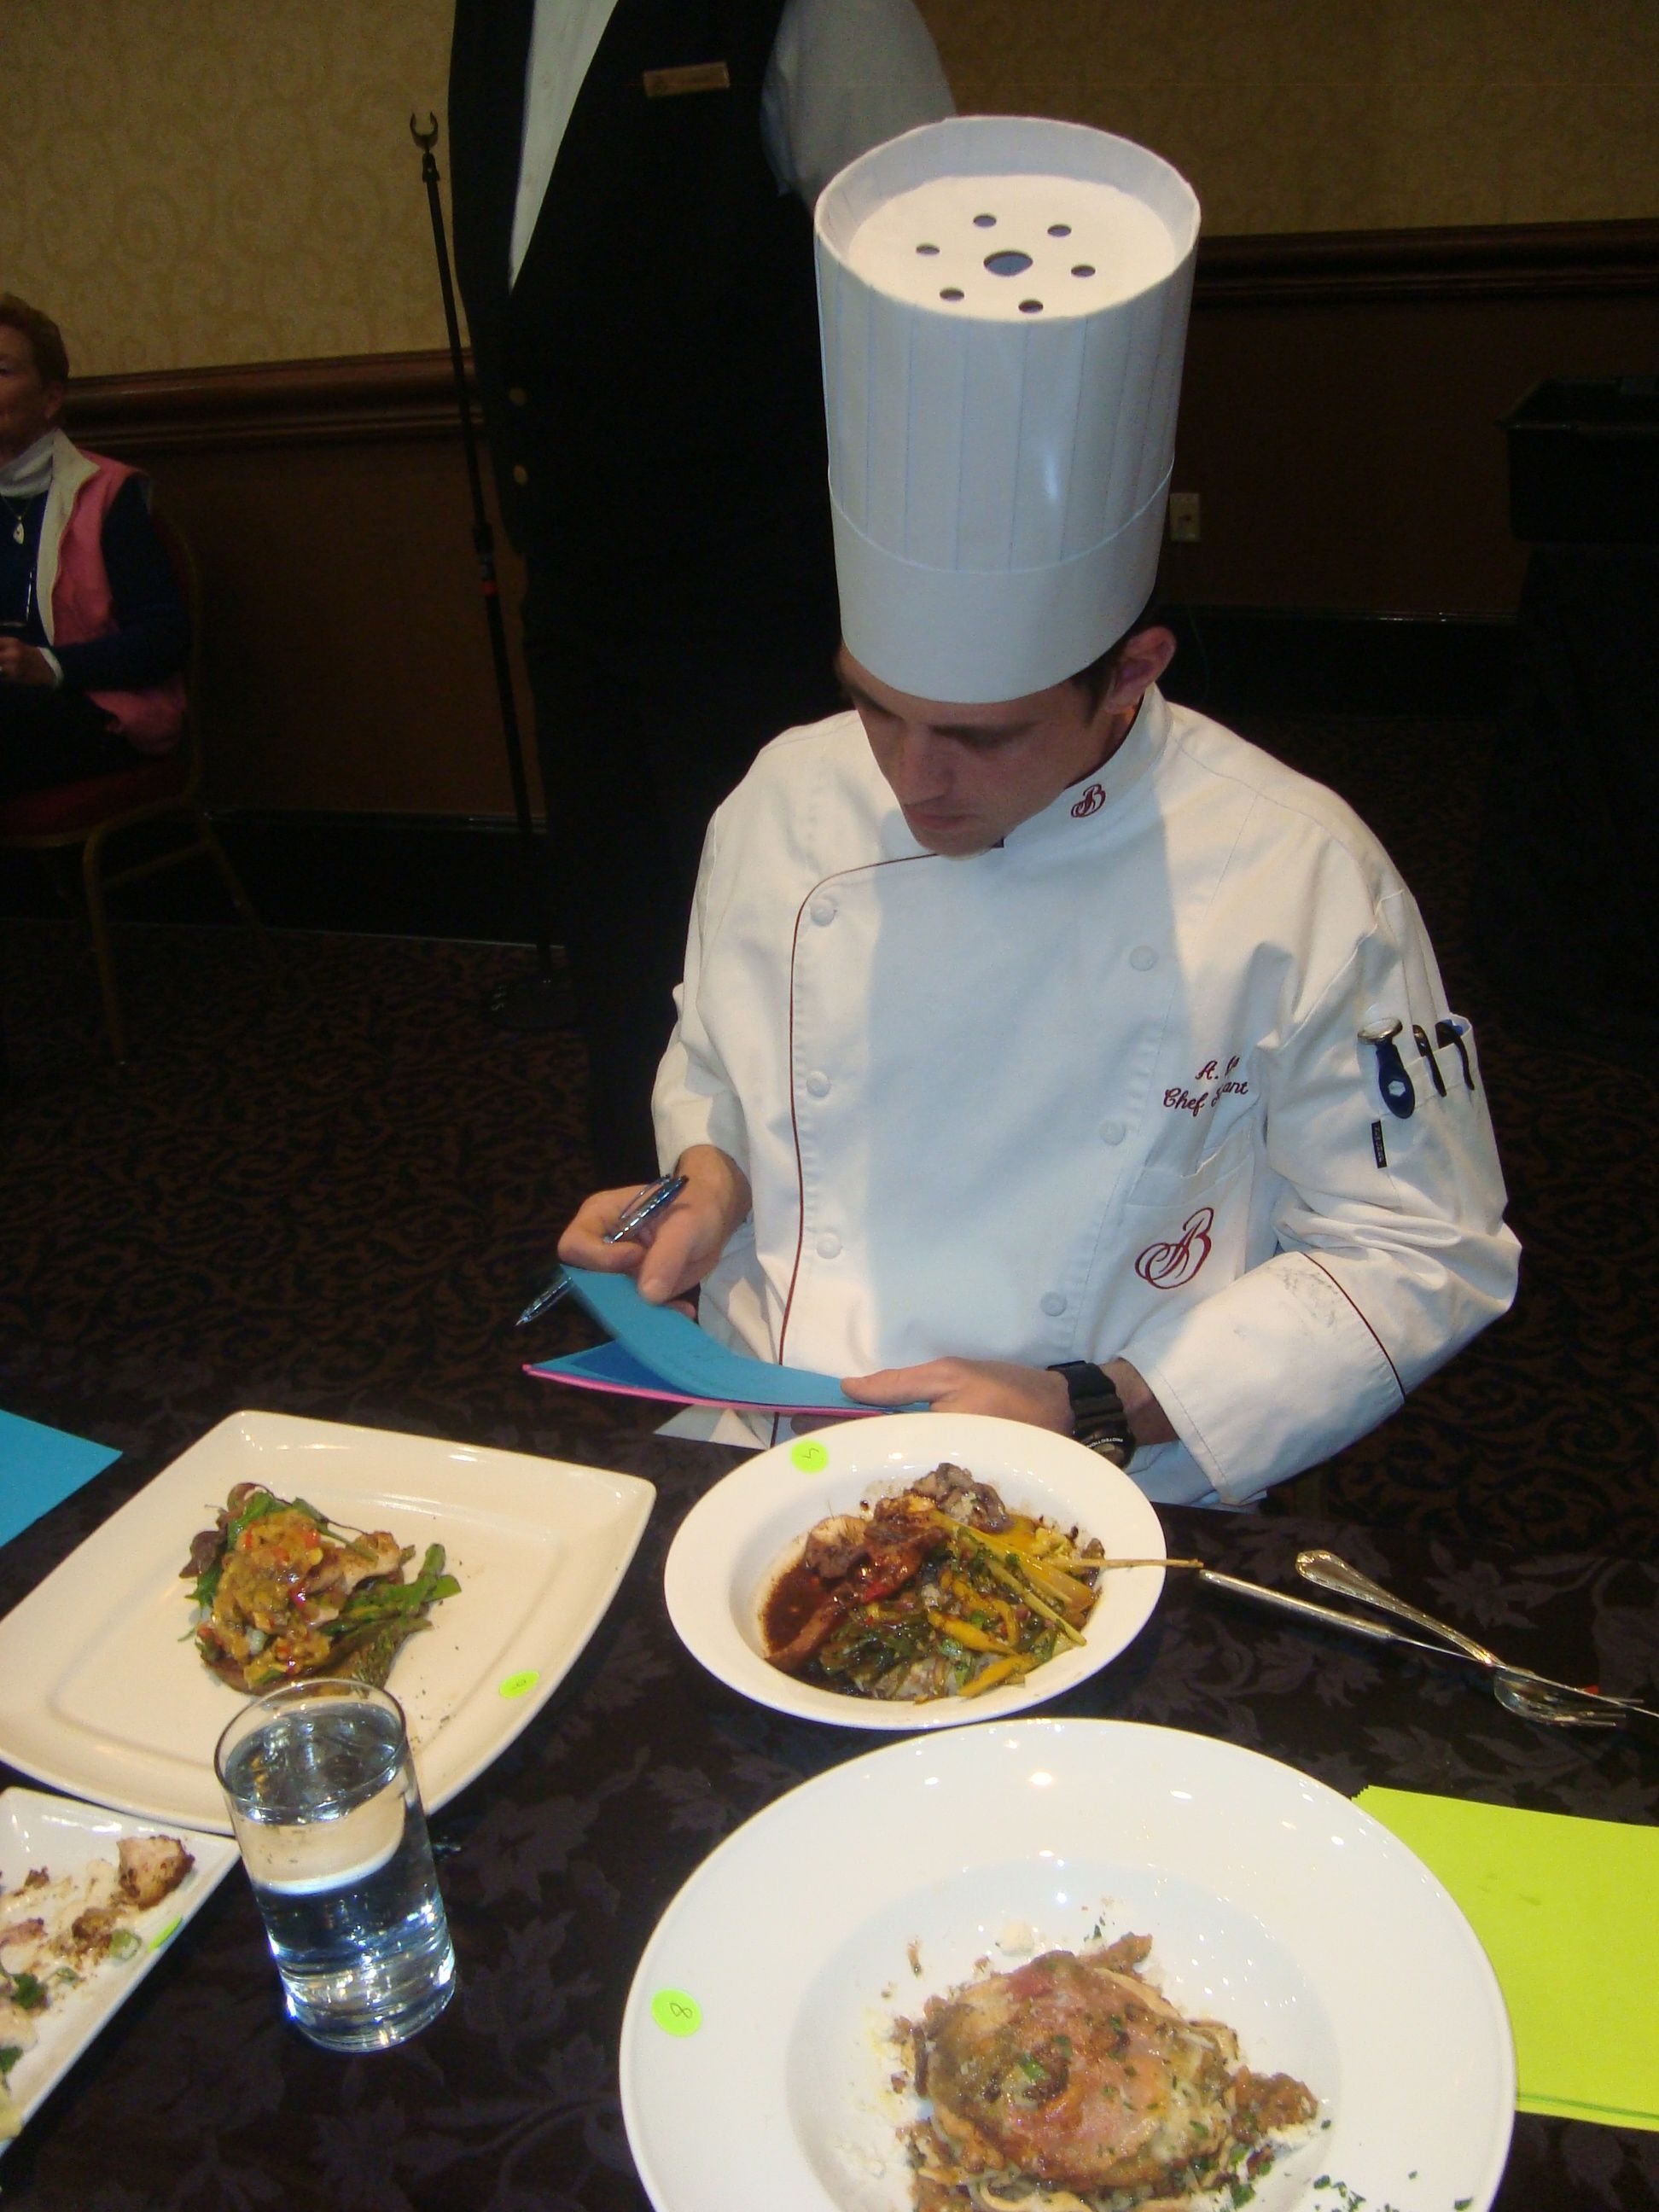 Experienced broadmoor chefs serve as judges for best chef